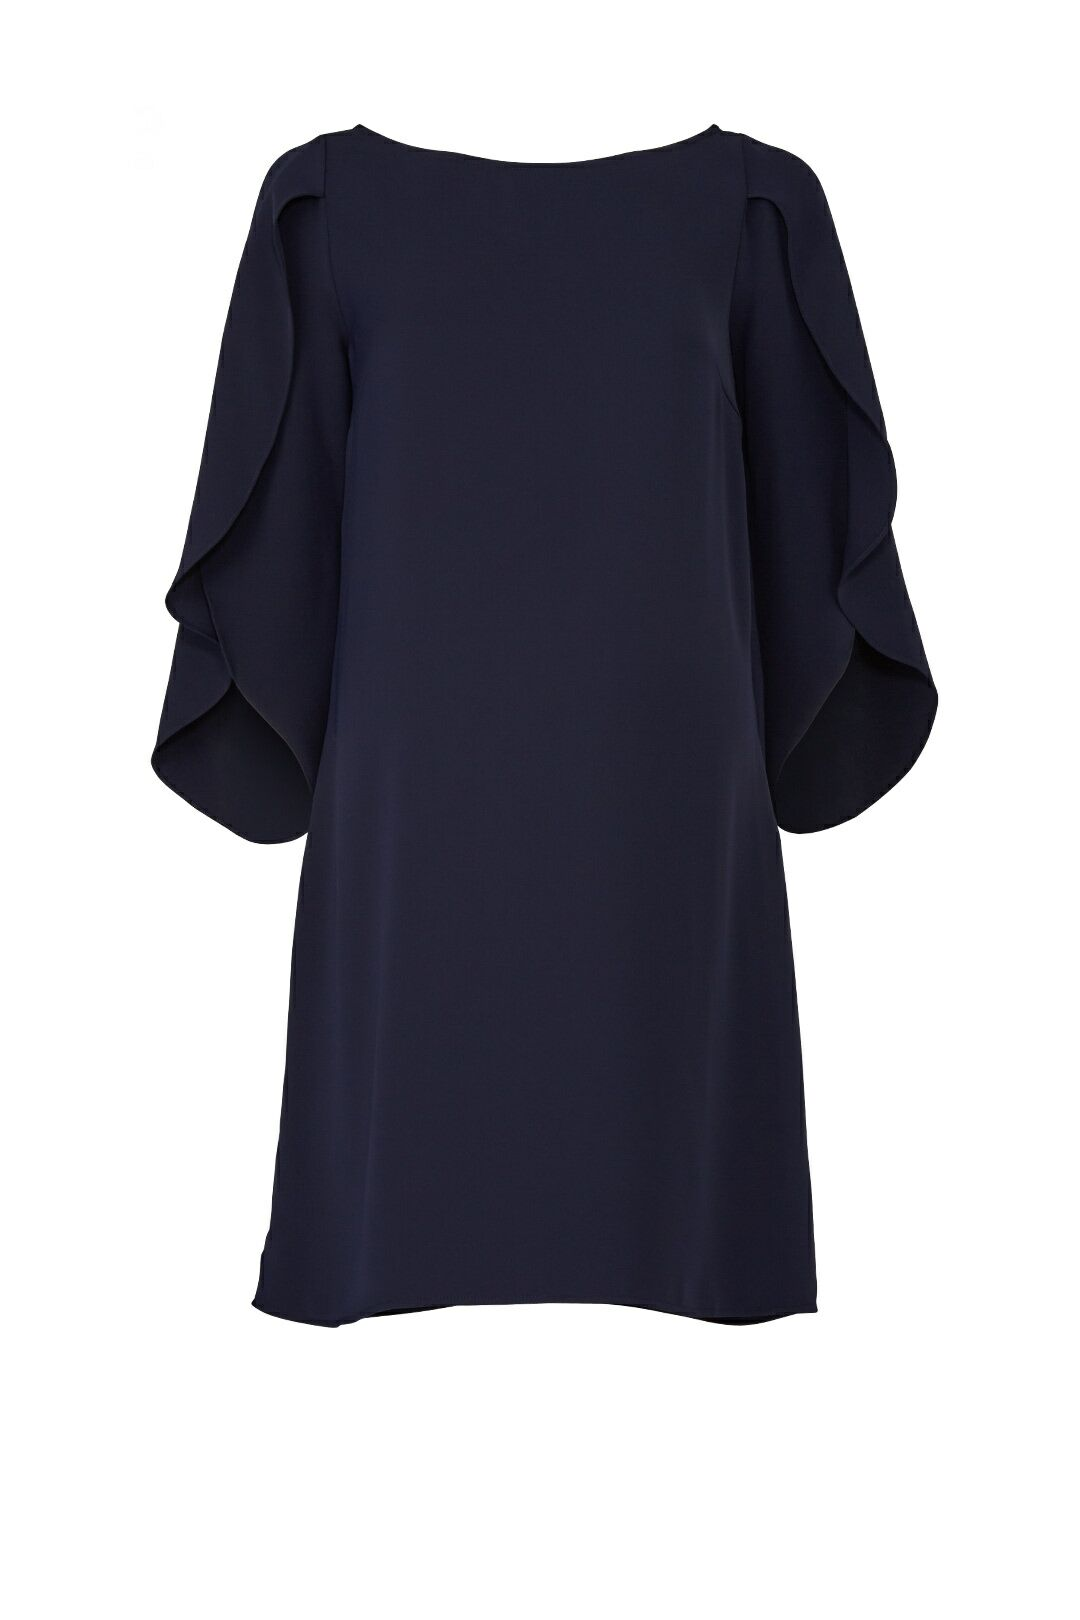 Navy Tulip Sleeve Maternity Dress